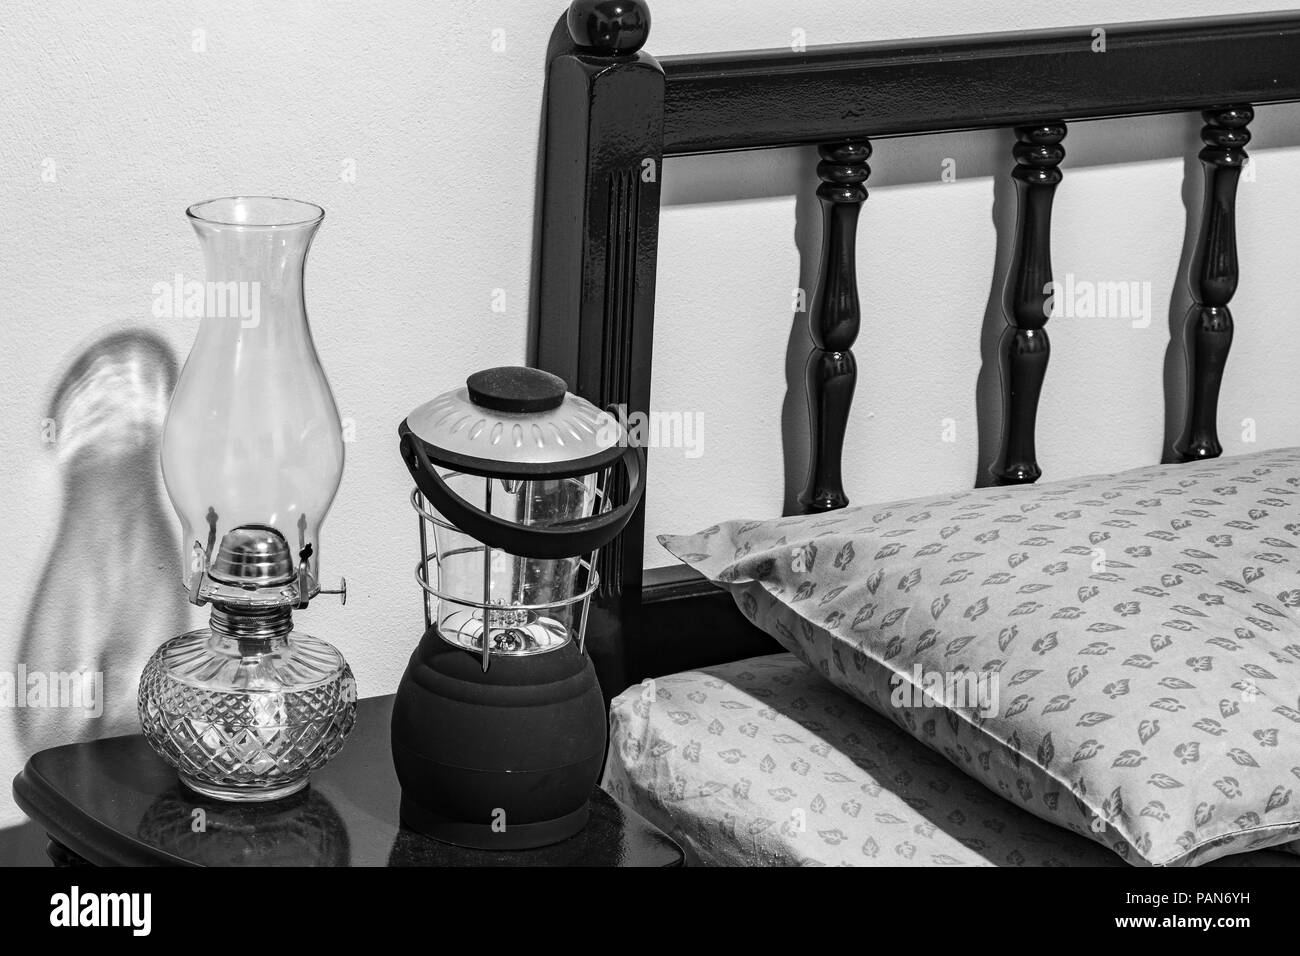 Vintage flat-wick kerosene oil lamp and modern battery operated lamp on bedside table, bed headboard, pillow, mattress, bedroom. - Stock Image